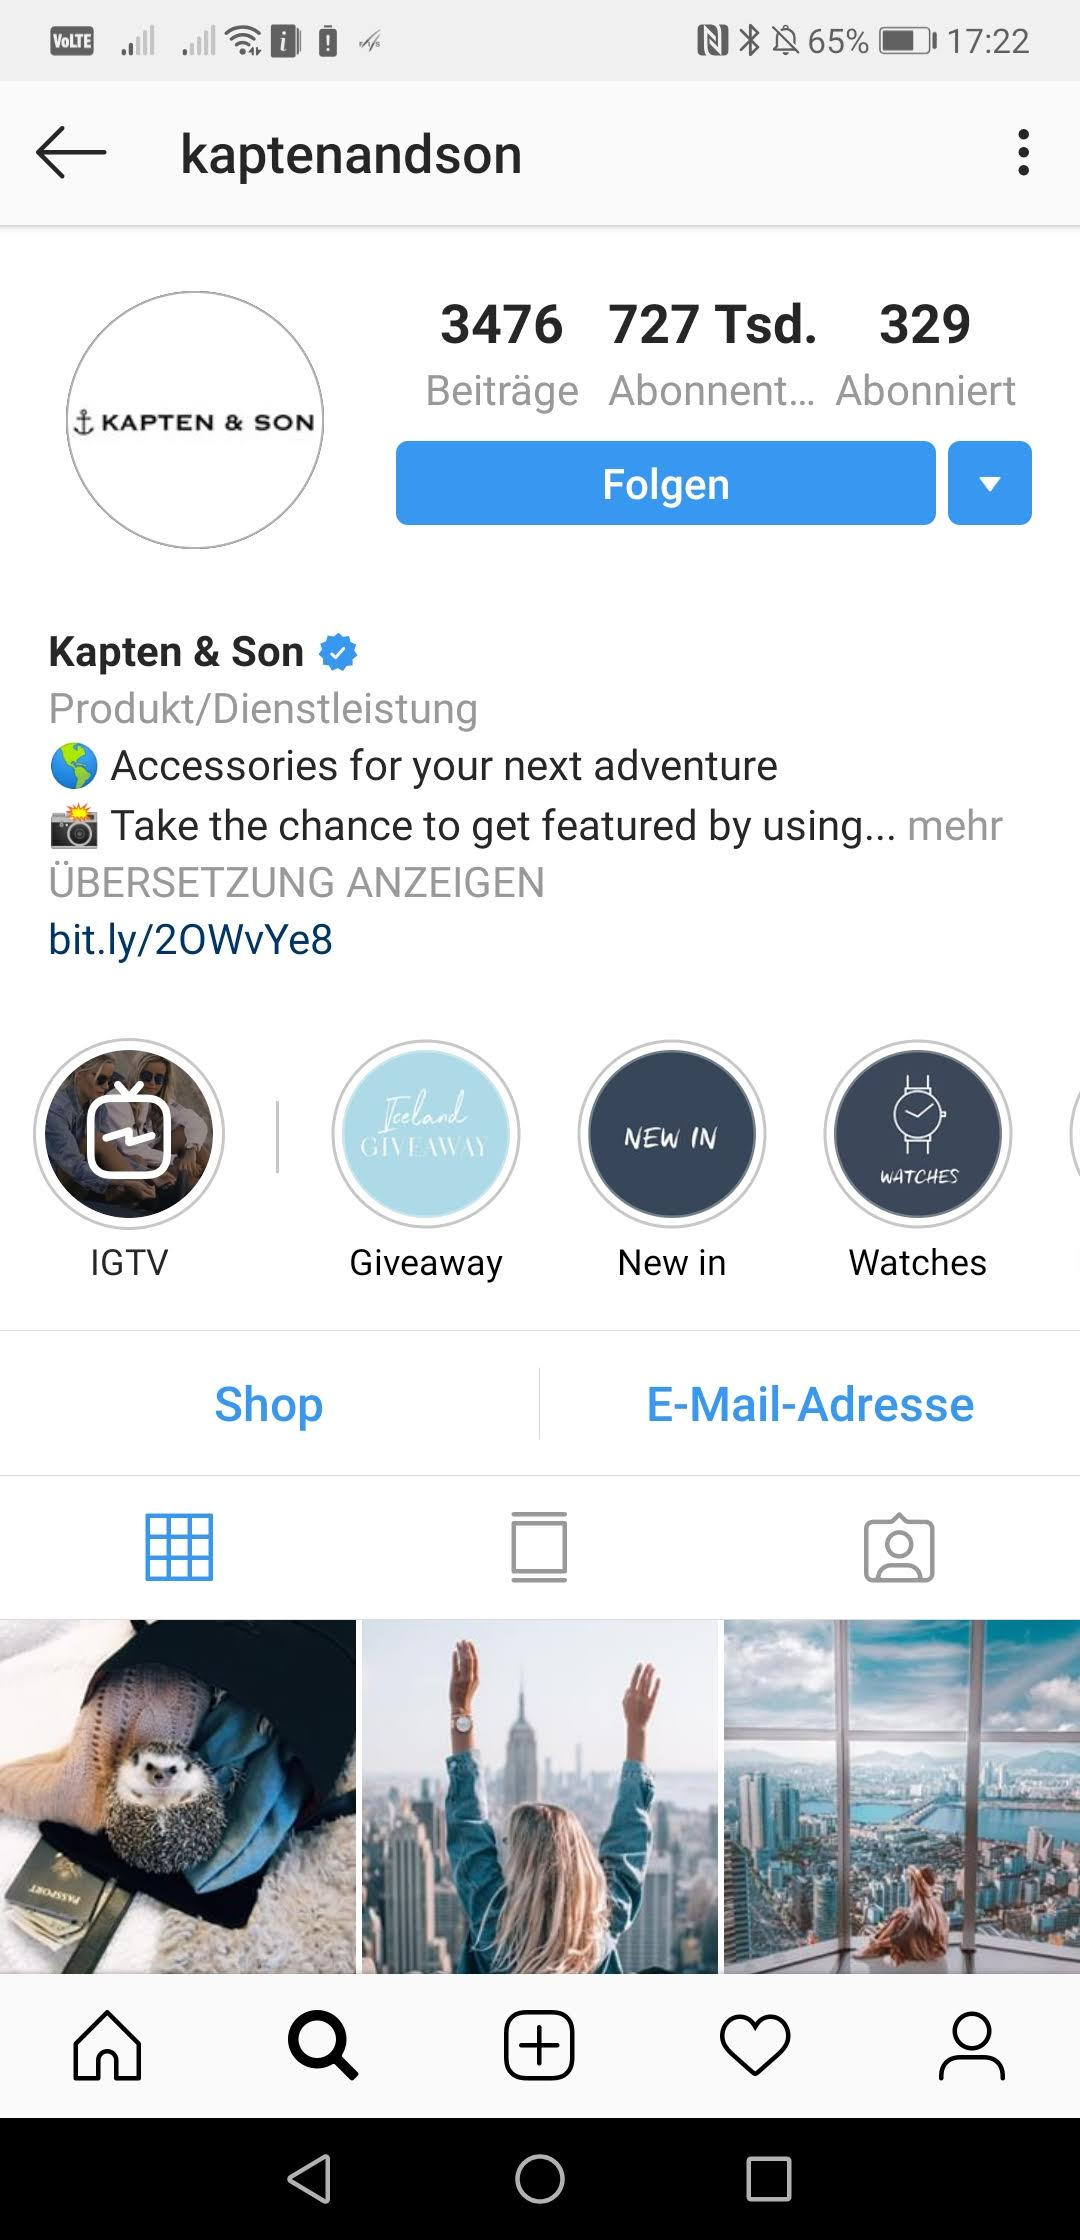 Screenshot 20190118 172217 com.instagram.android - Instagram Marketing mit Trendda